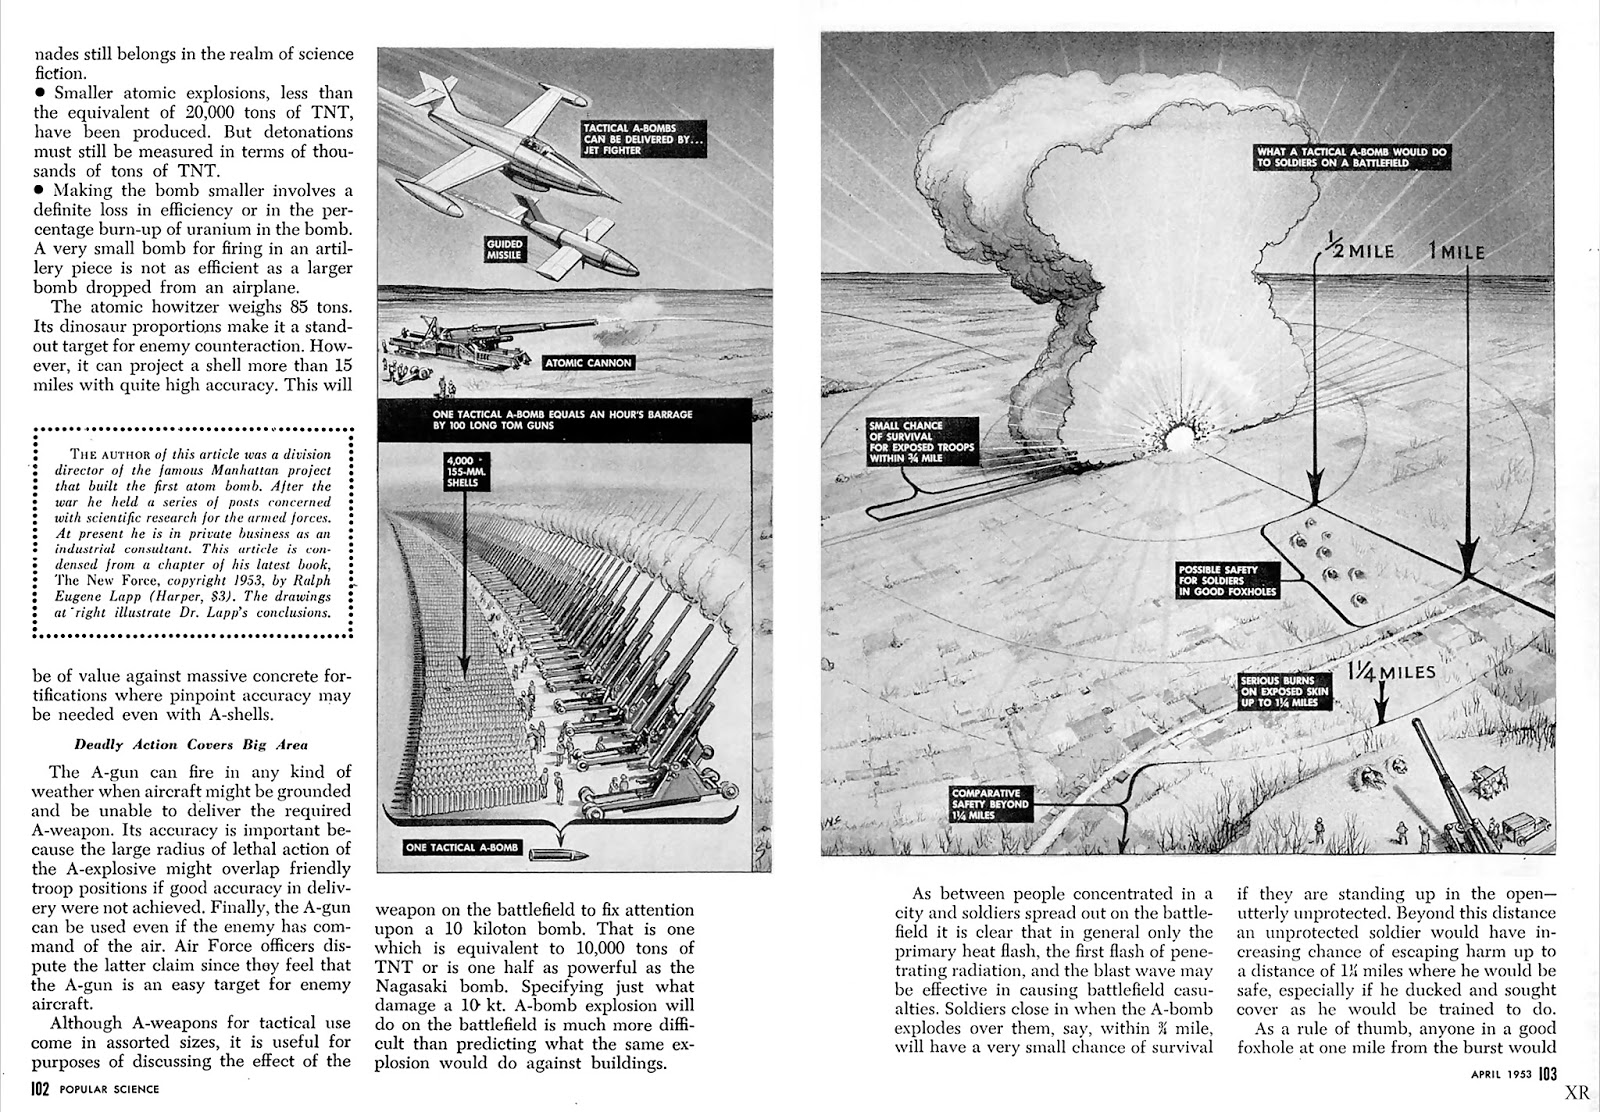 critical summary on the story of the first atom bomb The first test atomic bomb, called trinity, was exploded in the new mexico desert on july 16, 1945 he is also known for proposing the liquid model of the atomic nucleus and for formulating the bohr theory of the atom bohr received a doctoral degree from the university of copenhagen in 1911.